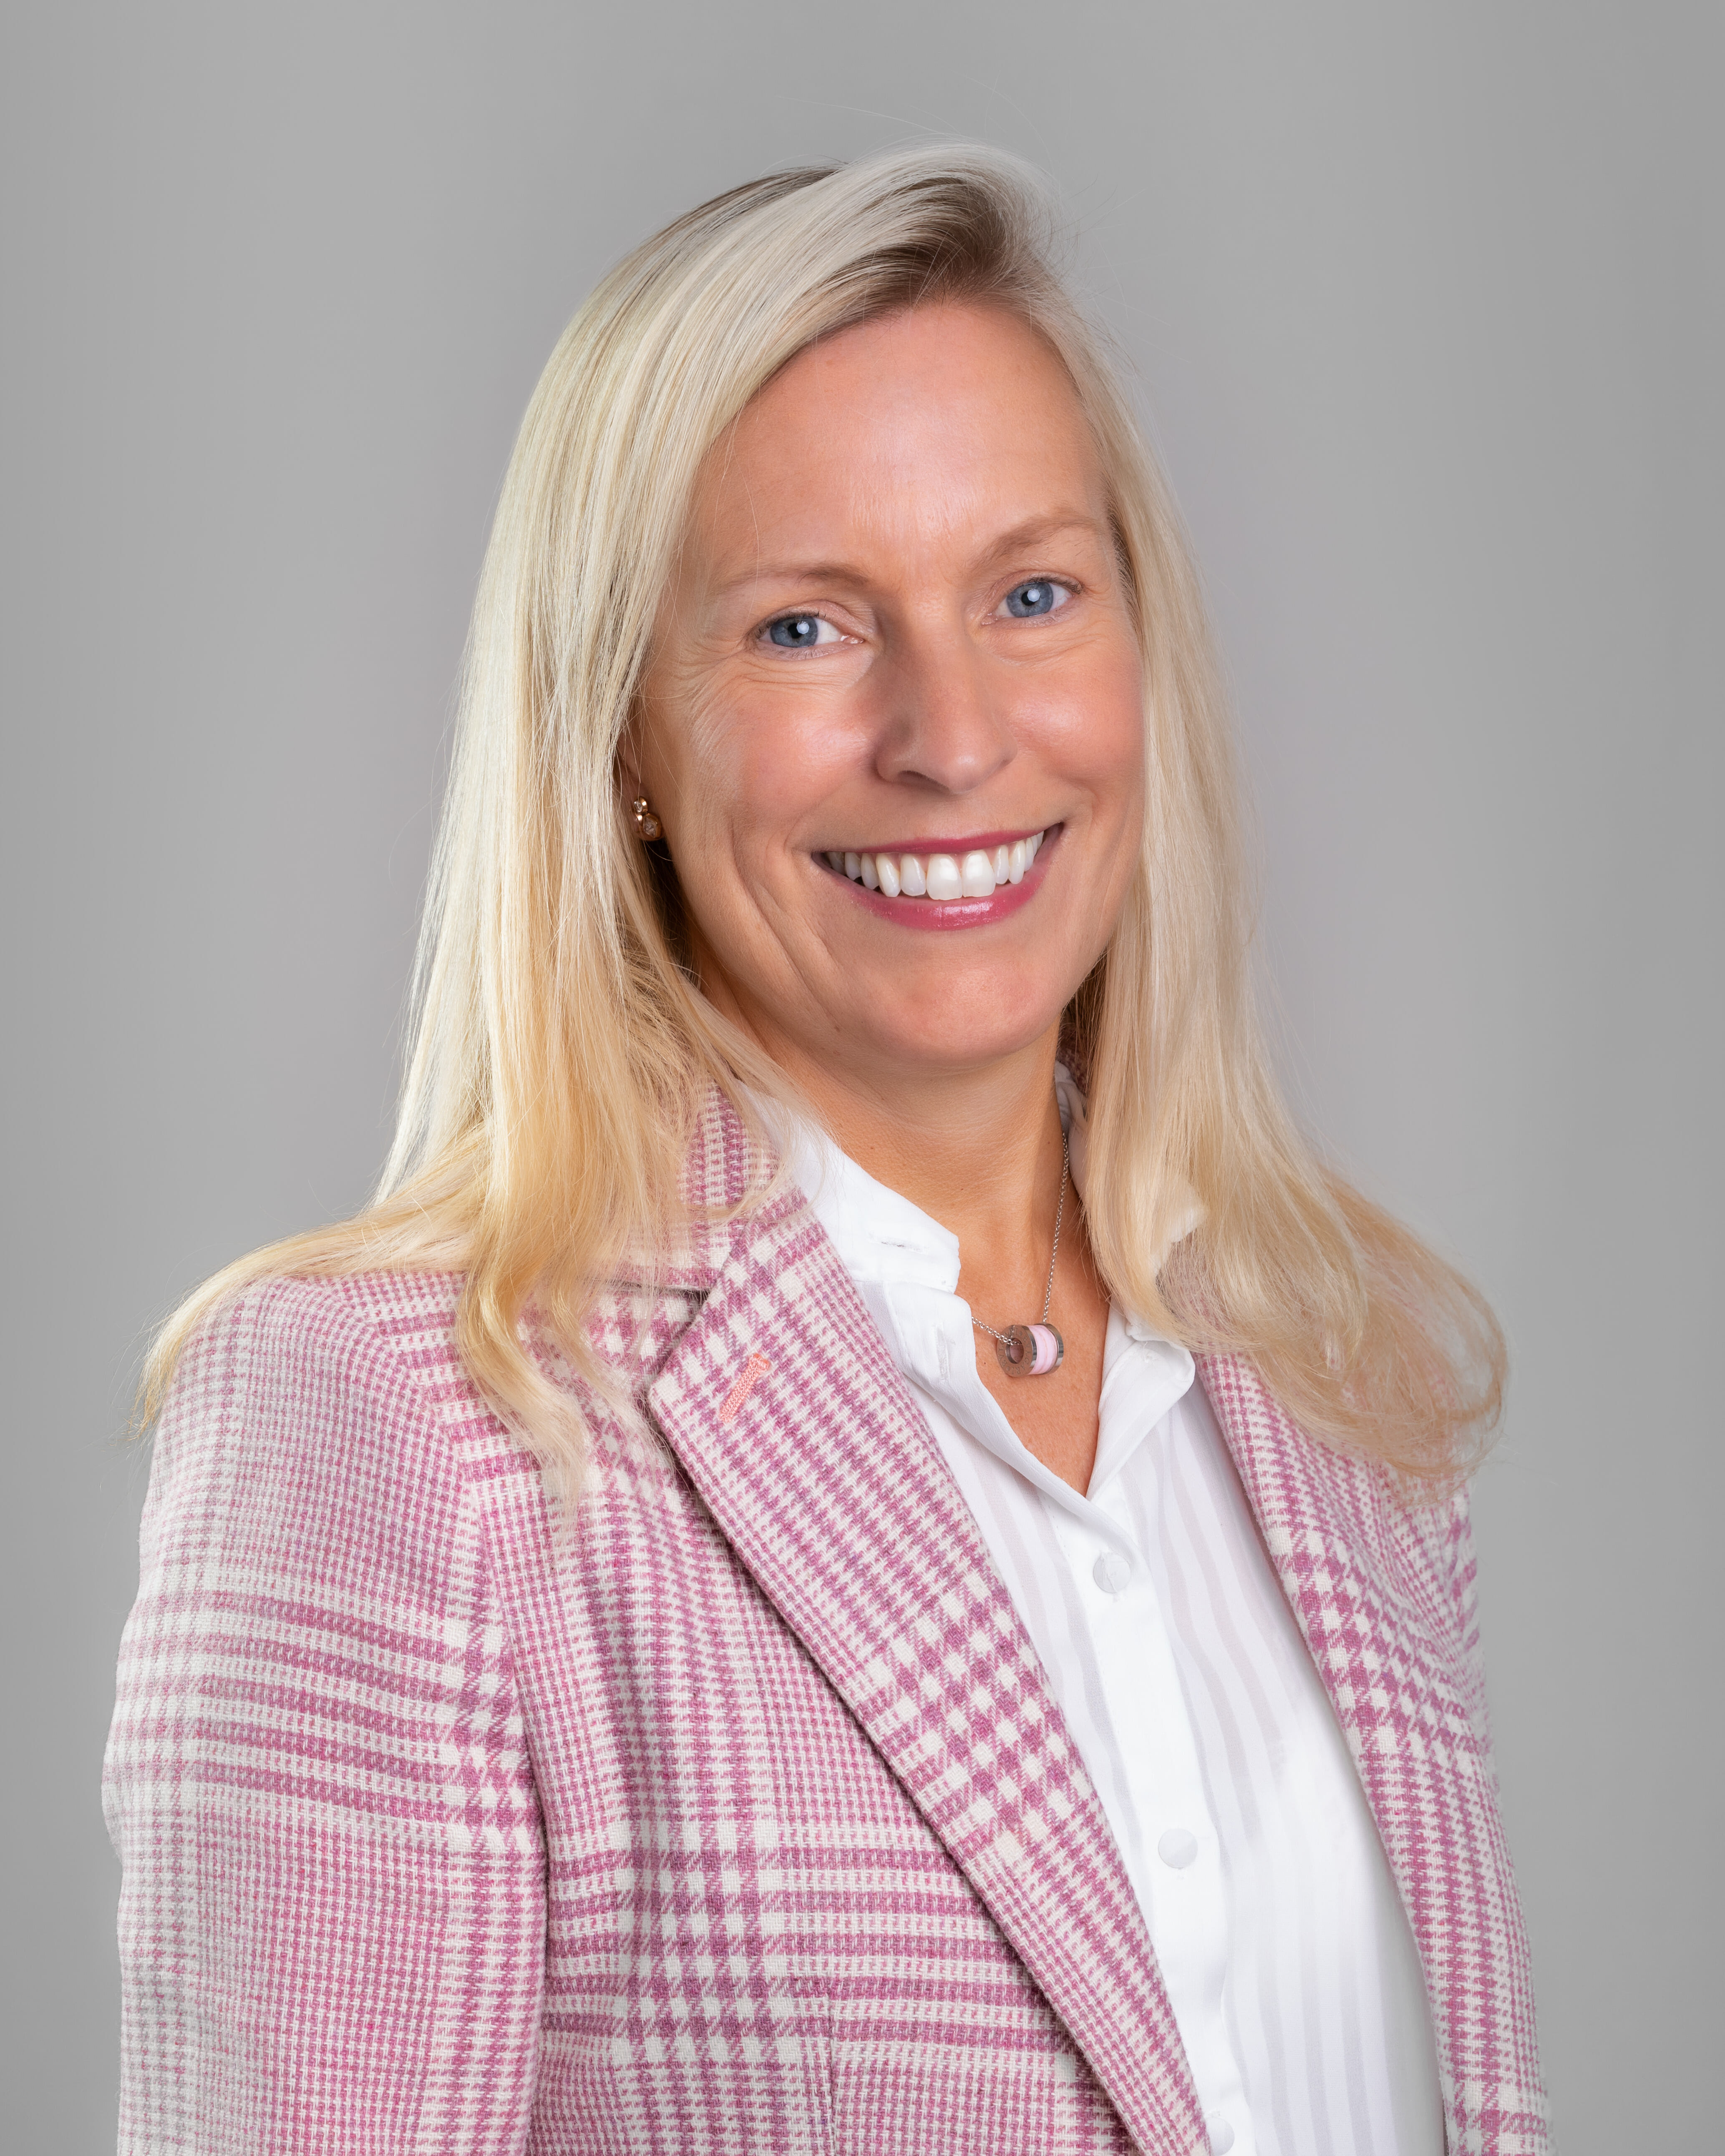 Victoria Wilkinson, Group Operations Director